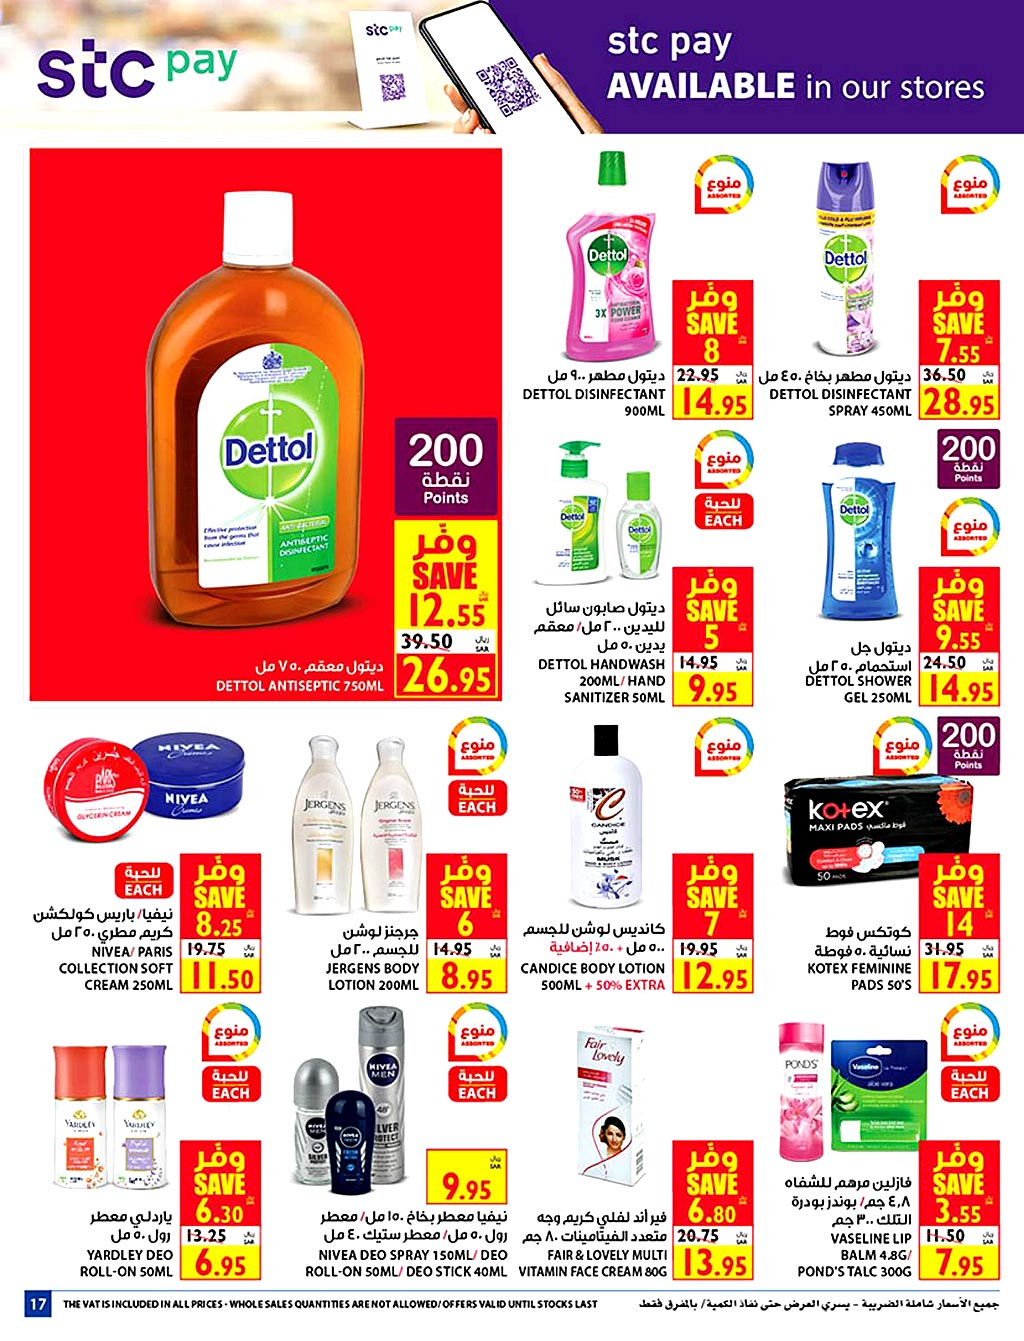 carrefour offers from 9sep to 22sep 2020 page number 16 عروض كارفور-السعودية من 9 سبتمبر حتى 22 سبتمبر 2020 صفحة رقم 16